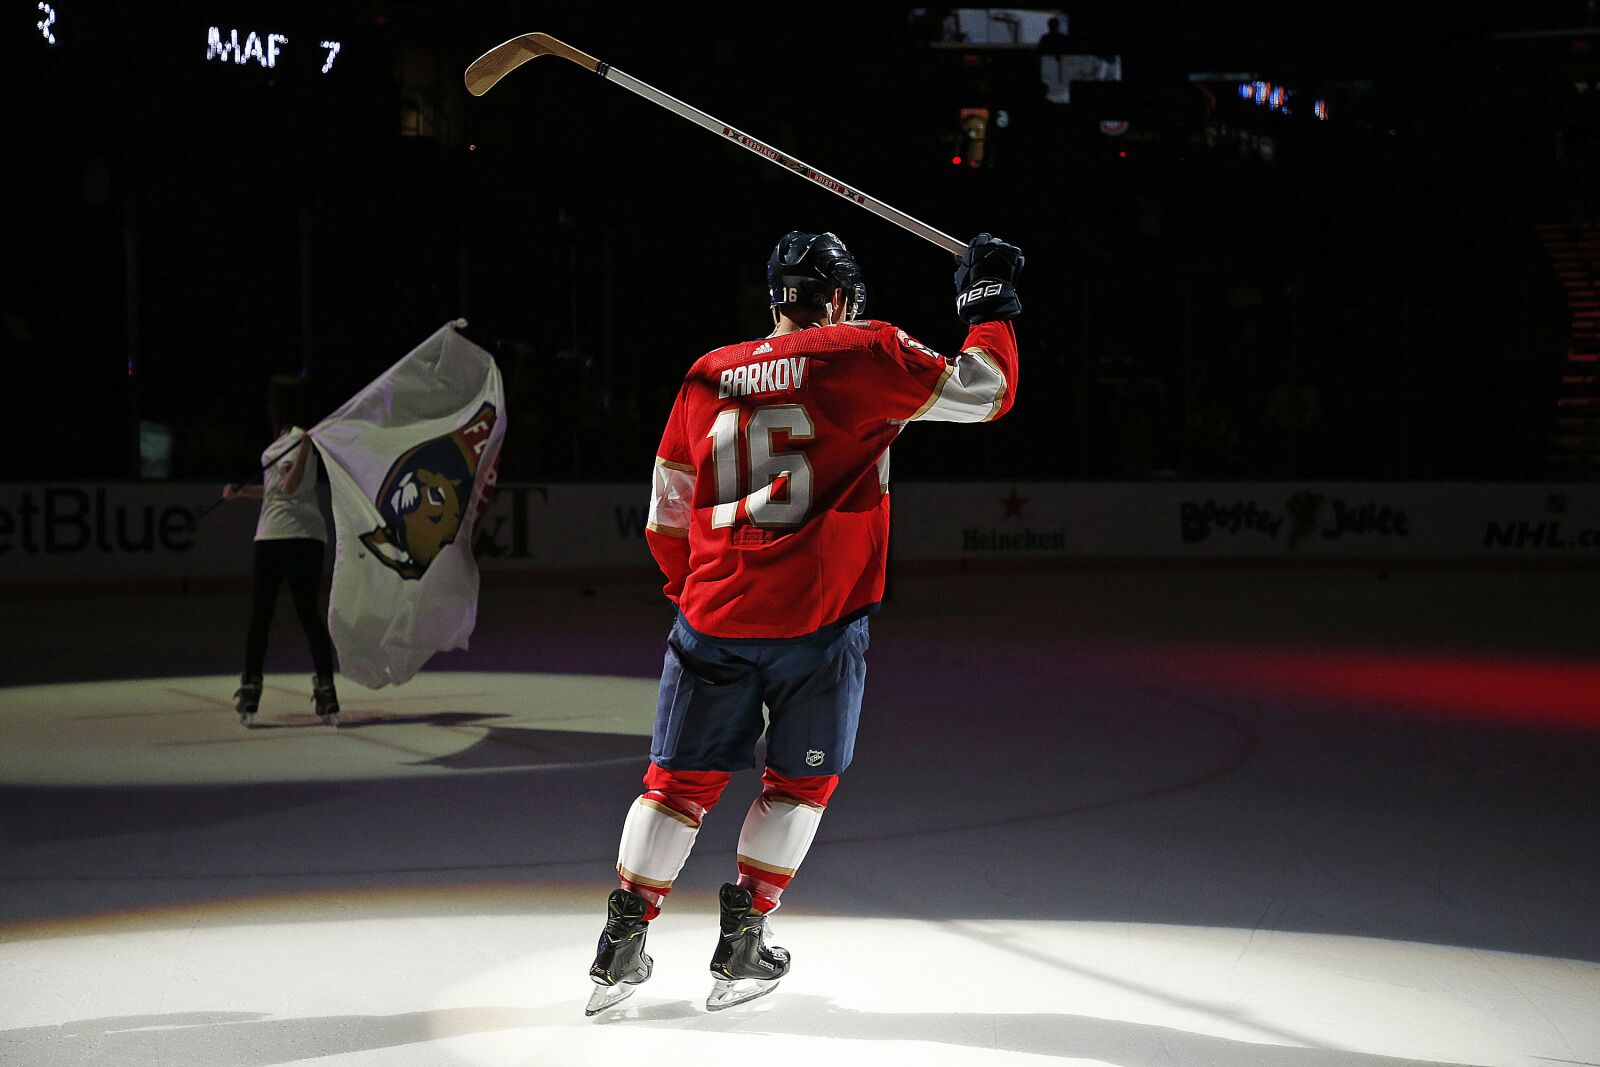 5 Florida Panthers Home Games To Attend in 2019-20